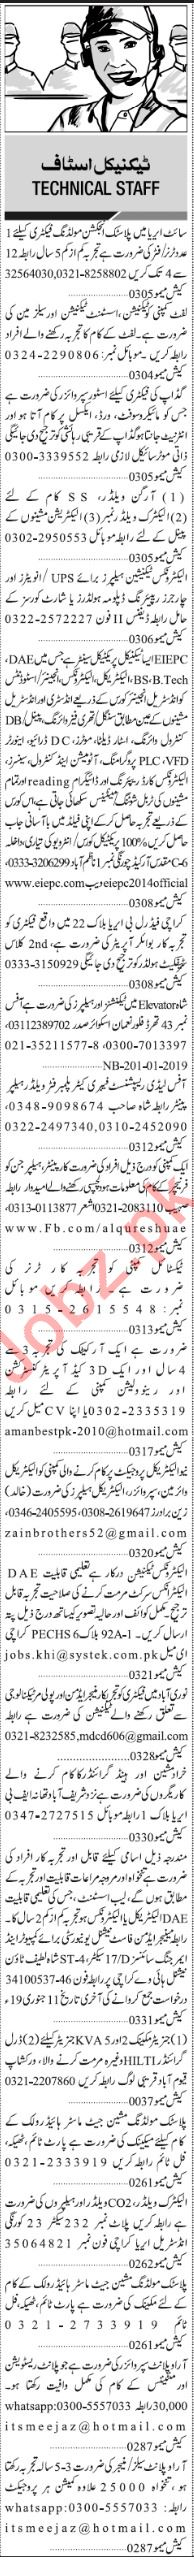 Jang Sunday Classified Ads 6th Jan 2019 for Technical Staff